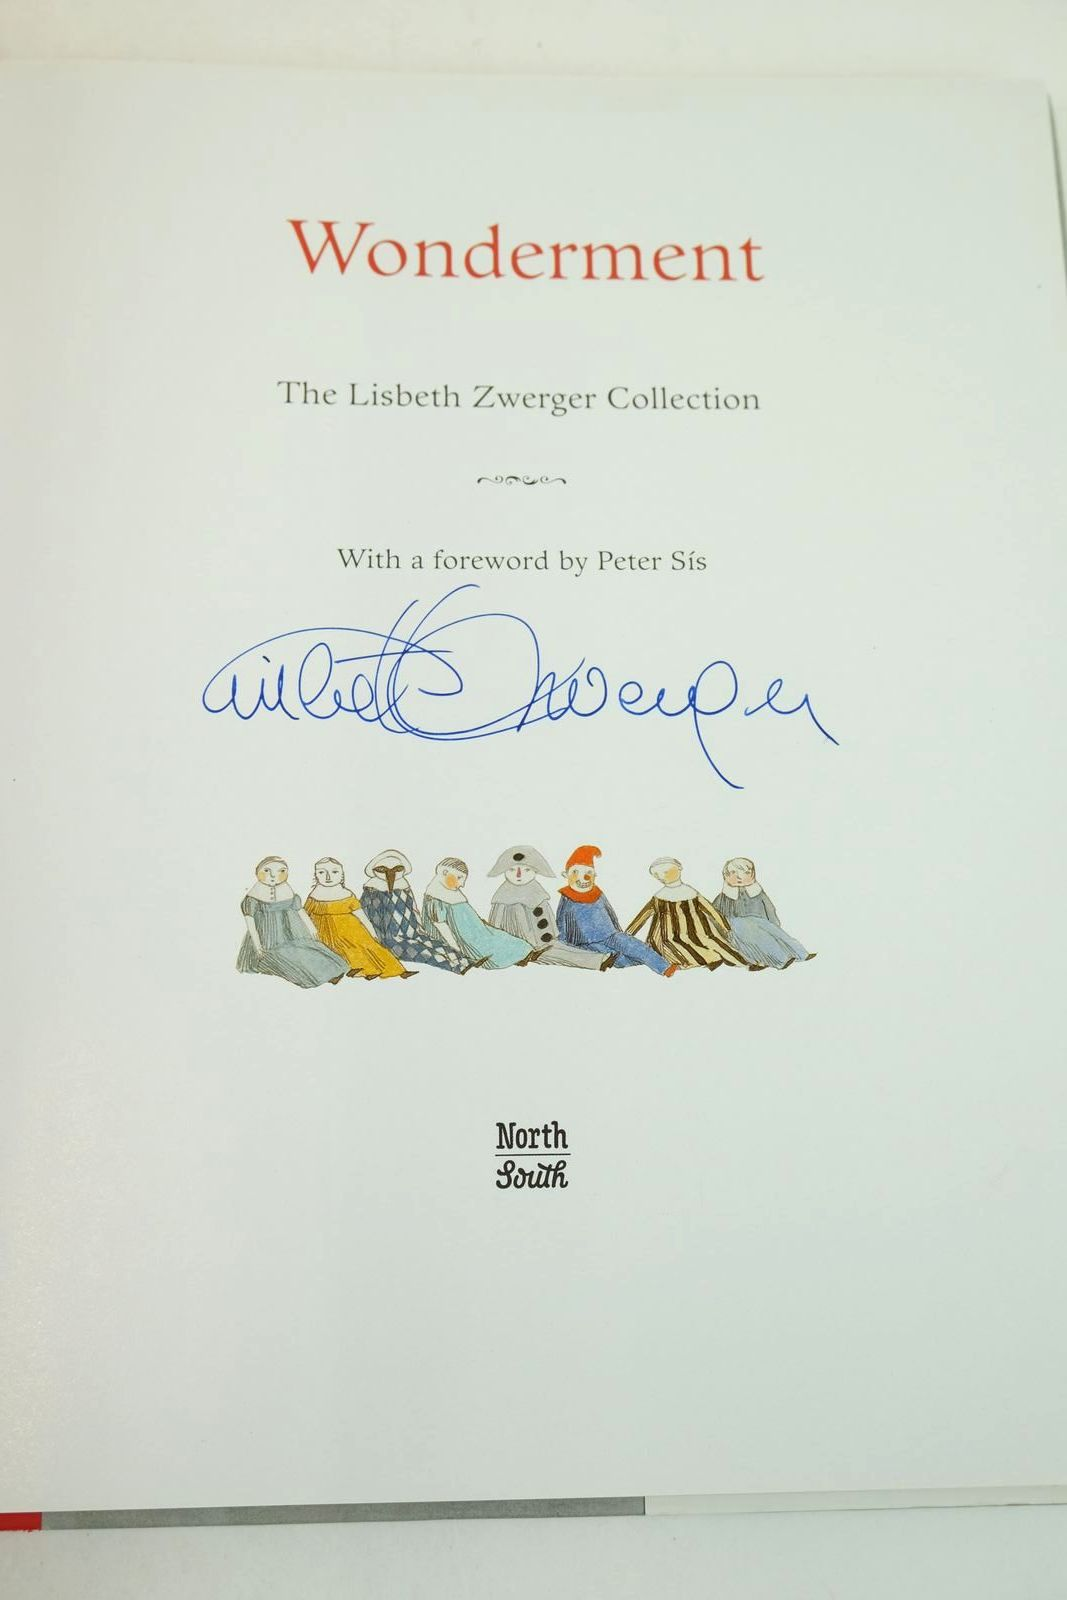 Photo of WONDERMENT: THE LISBETH ZWERGER COLLECTION written by Storm, Theodor Hoffmann, E.T.A. Wilde, Oscar Henry, O. Nesbit, E. Kipling, Rudyard illustrated by Zwerger, Lisbeth published by North South Books (STOCK CODE: 1318963)  for sale by Stella & Rose's Books